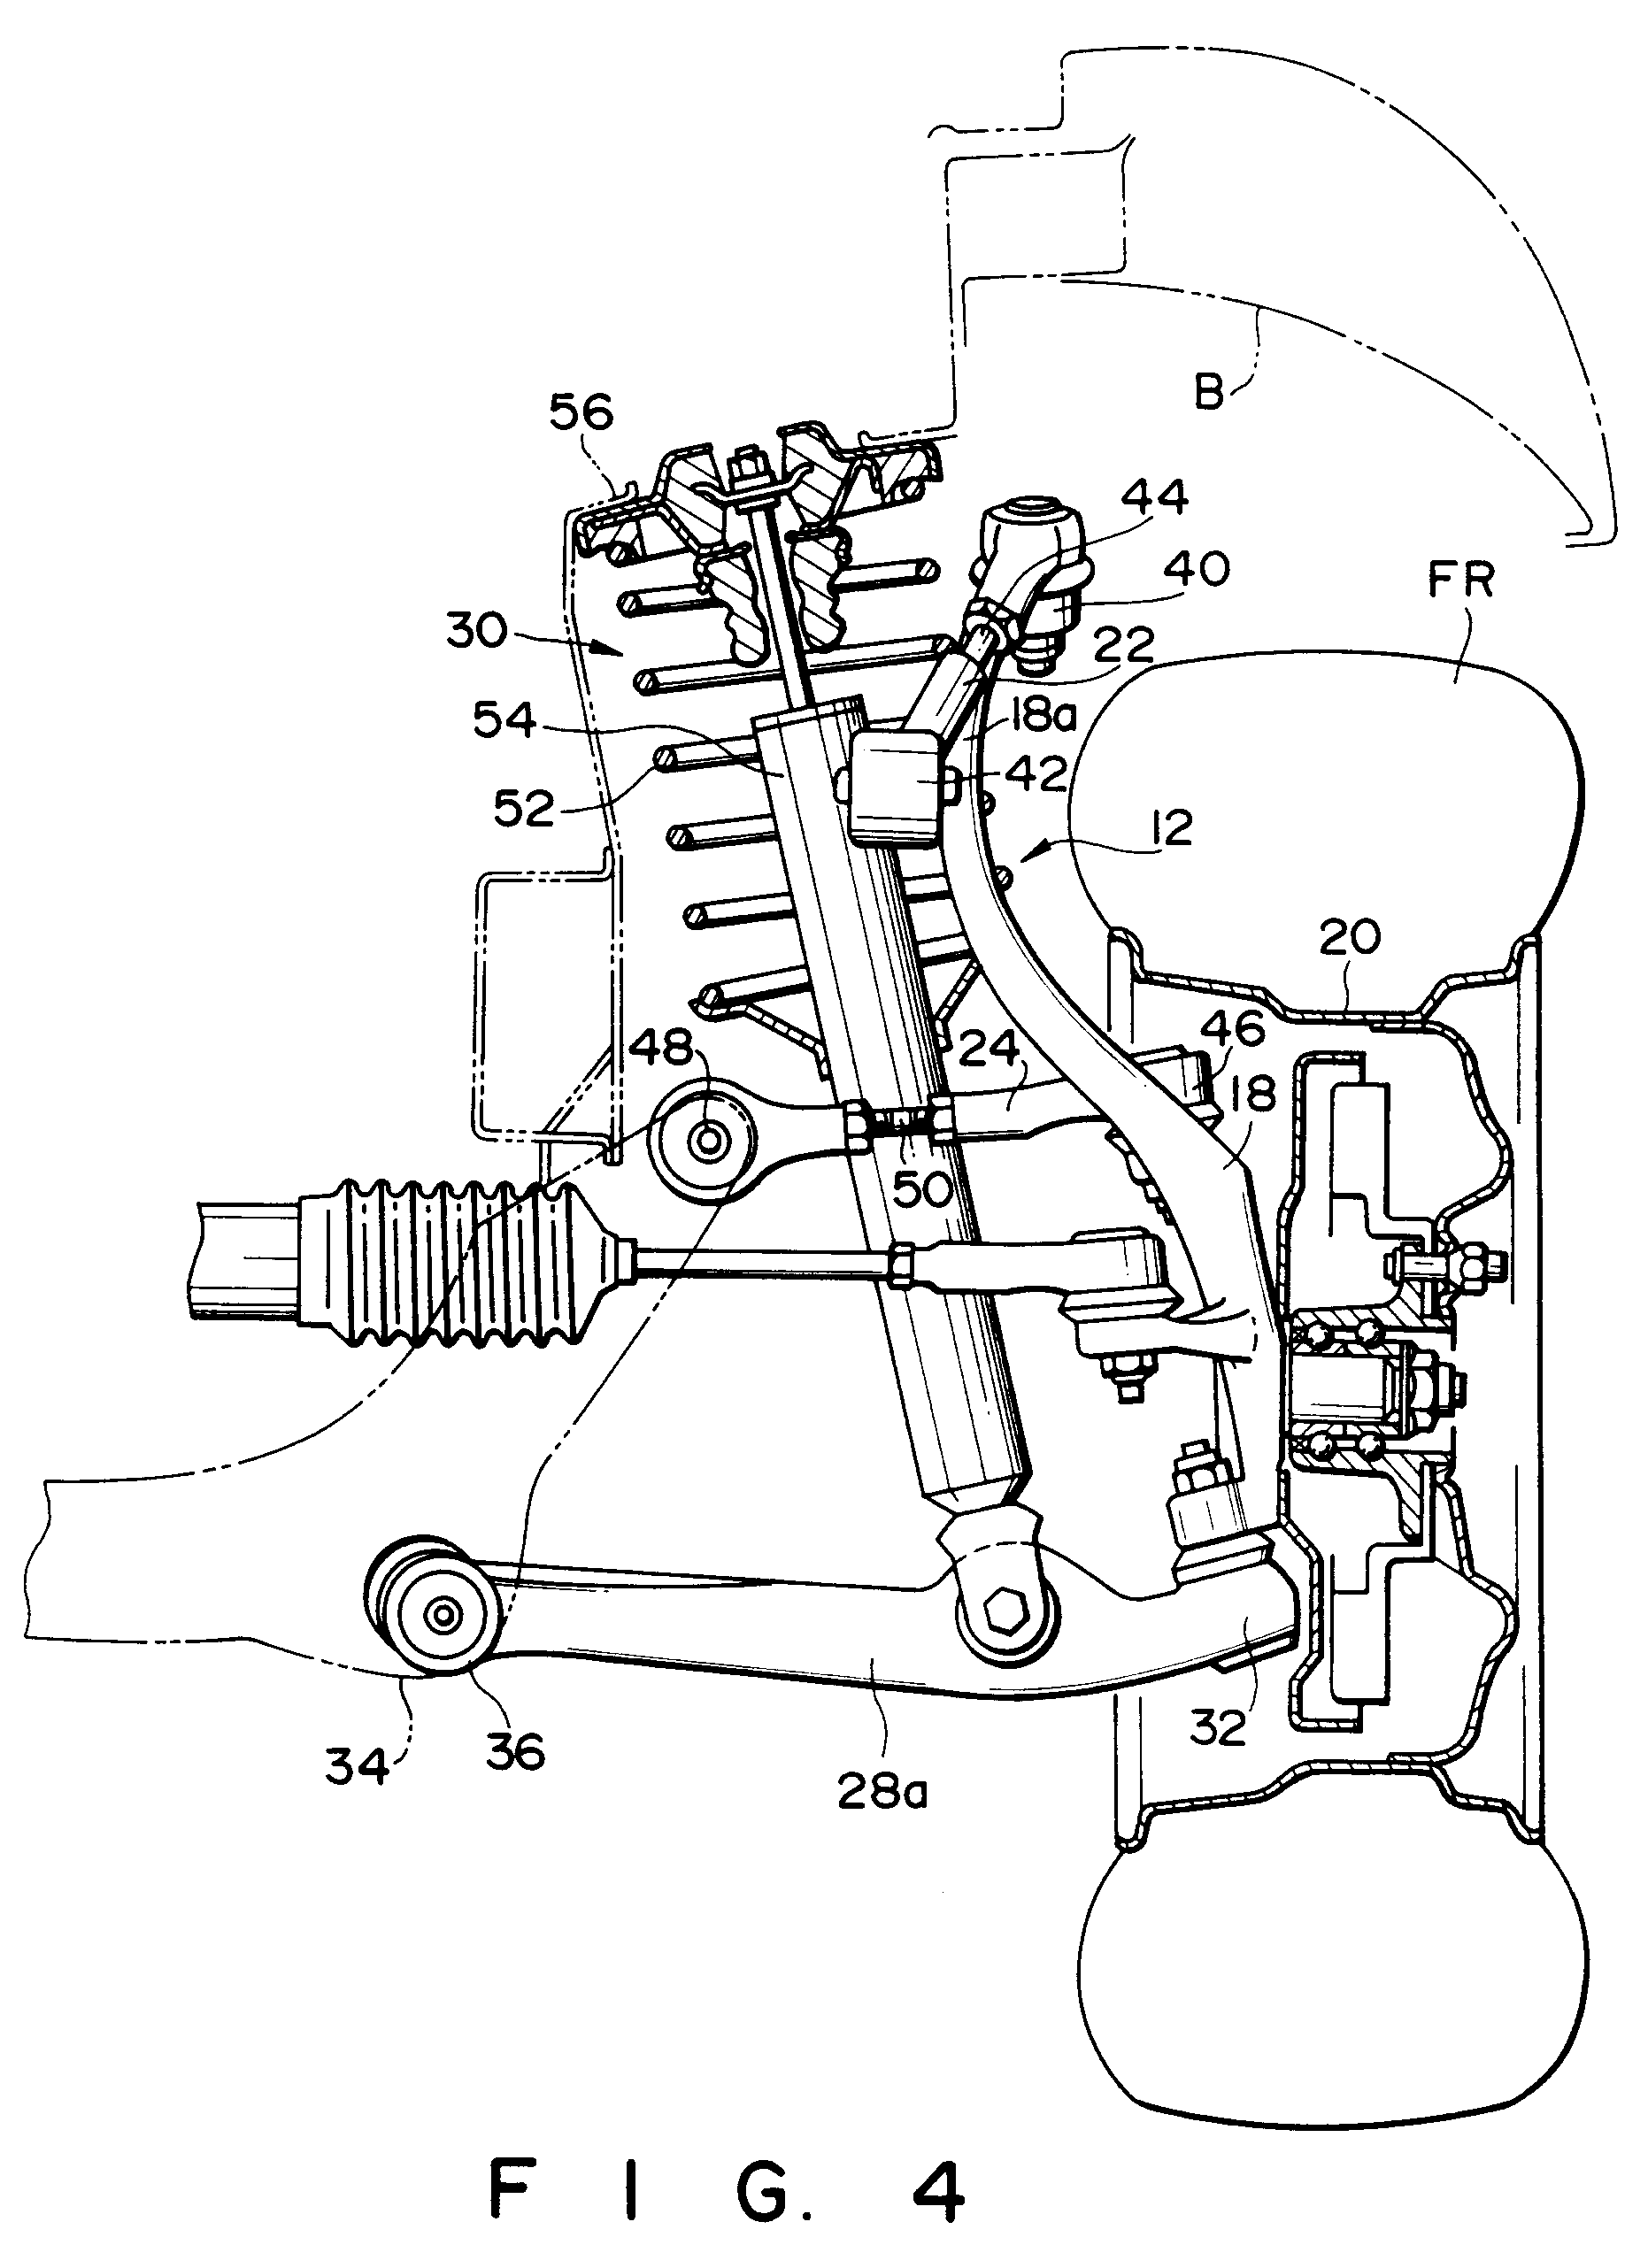 Sony Aftermarket Wiring Diagram likewise Free Download Eaton Fuller 10 Speed Transmission Service Manual additionally Wiring Harness For 2010 Ford Fusion additionally 2001 Mitsubishi Eclipse Wiring Diagram additionally Stereo Wire Harness Jeep Grand Cherokee 05 2005 Car Radio. on ford f150 stereo wiring harness adapter